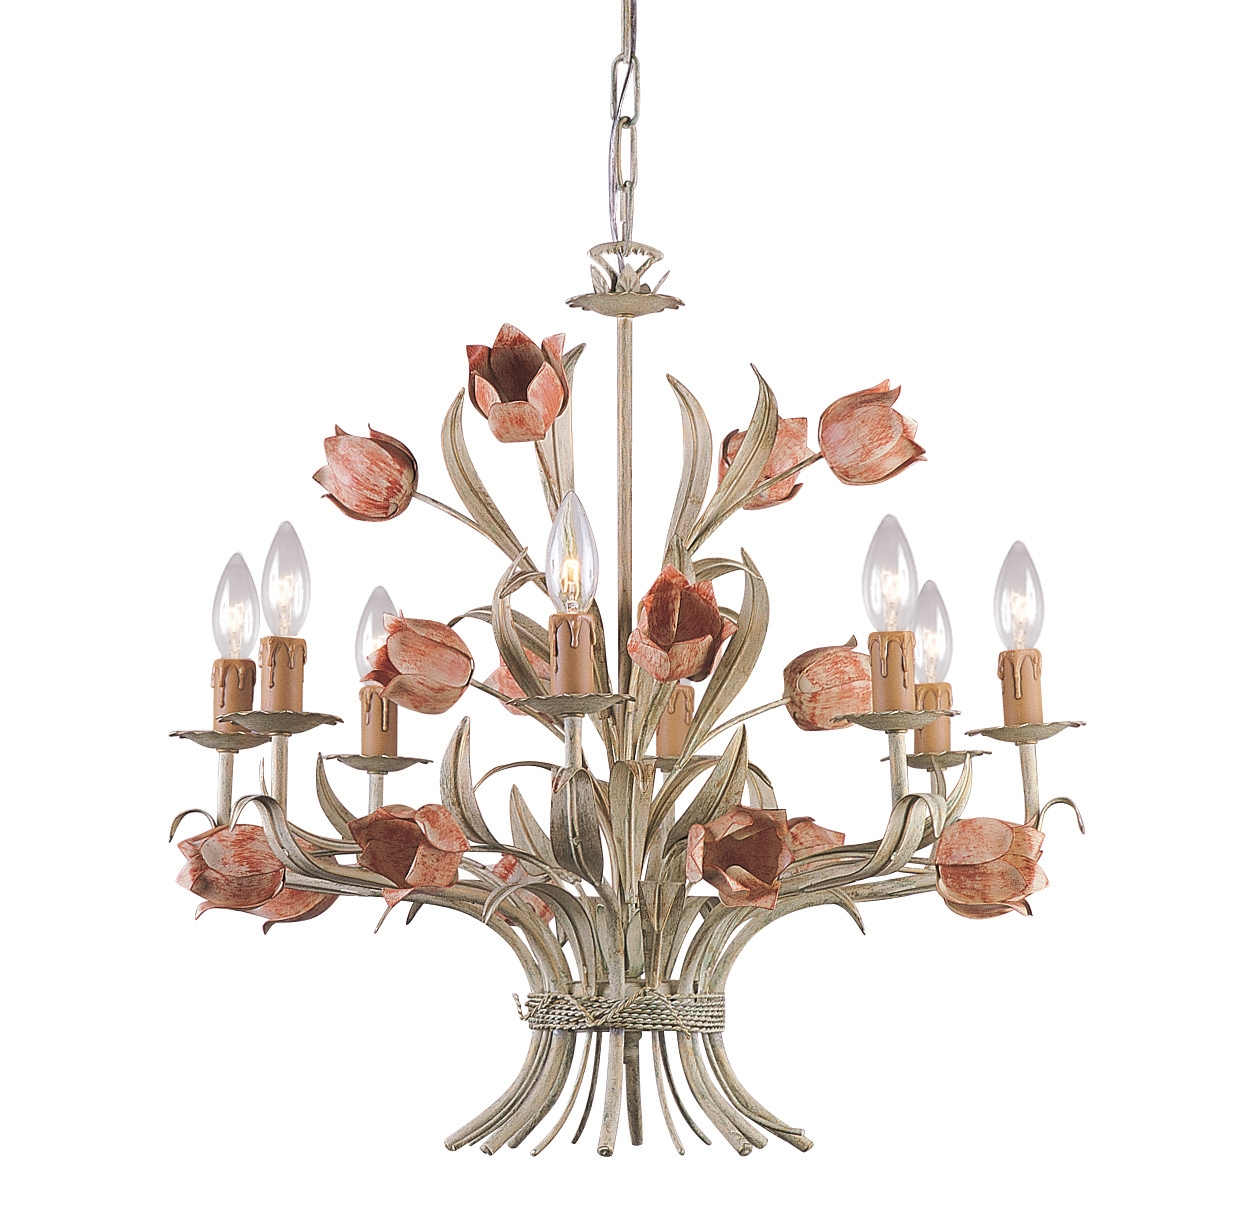 Shab Chic Dining Room Lighting Reviewsratingsprices In Shabby Chic Chandeliers (#10 of 12)